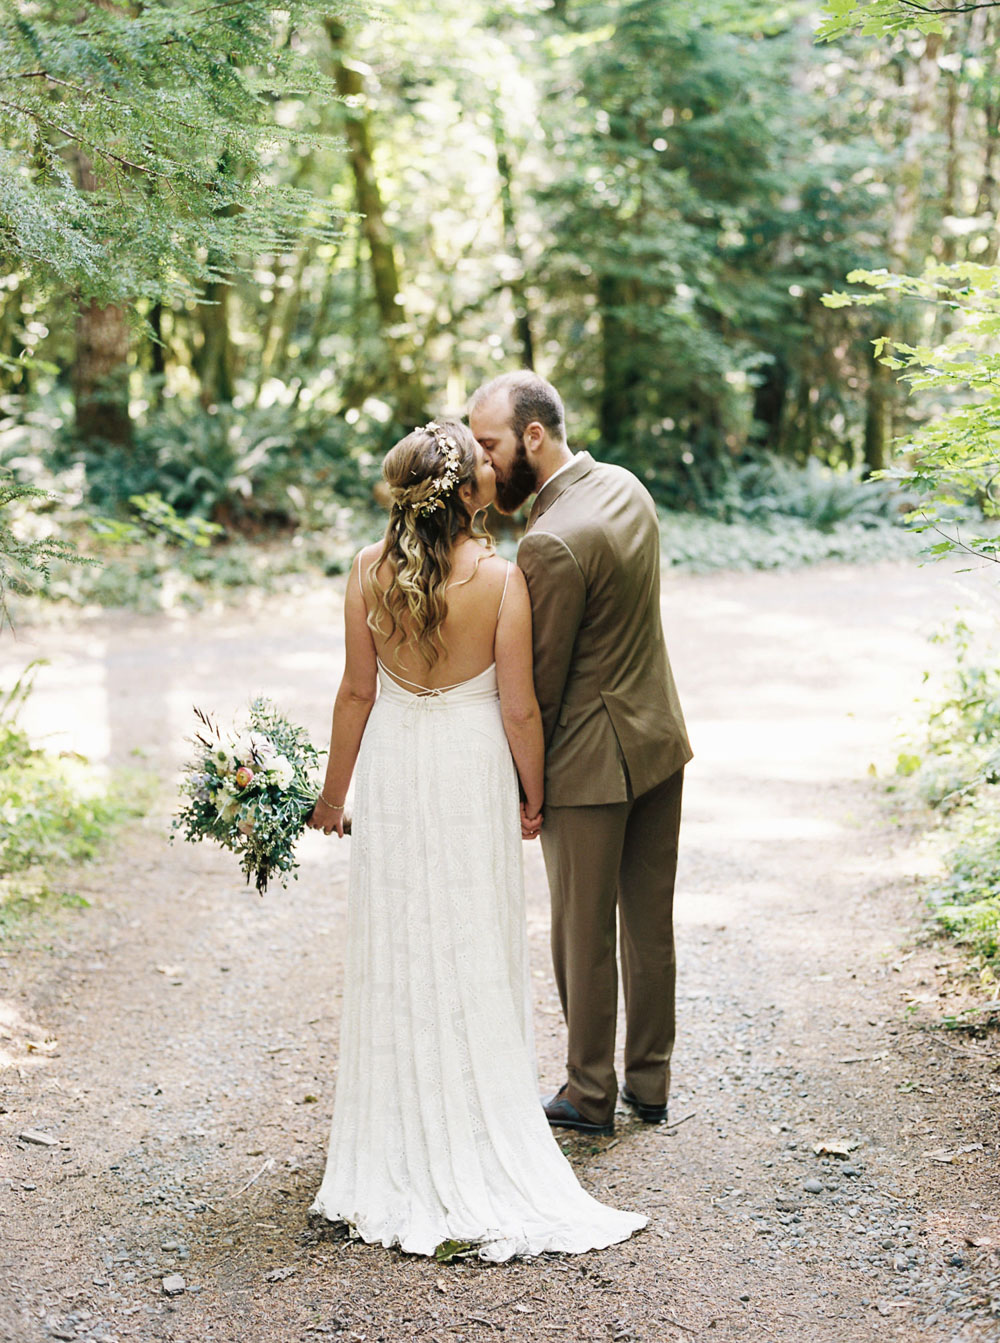 Wellspring Spa Wedding at Mt. Rainier captured by Seattle Wedding Photographer